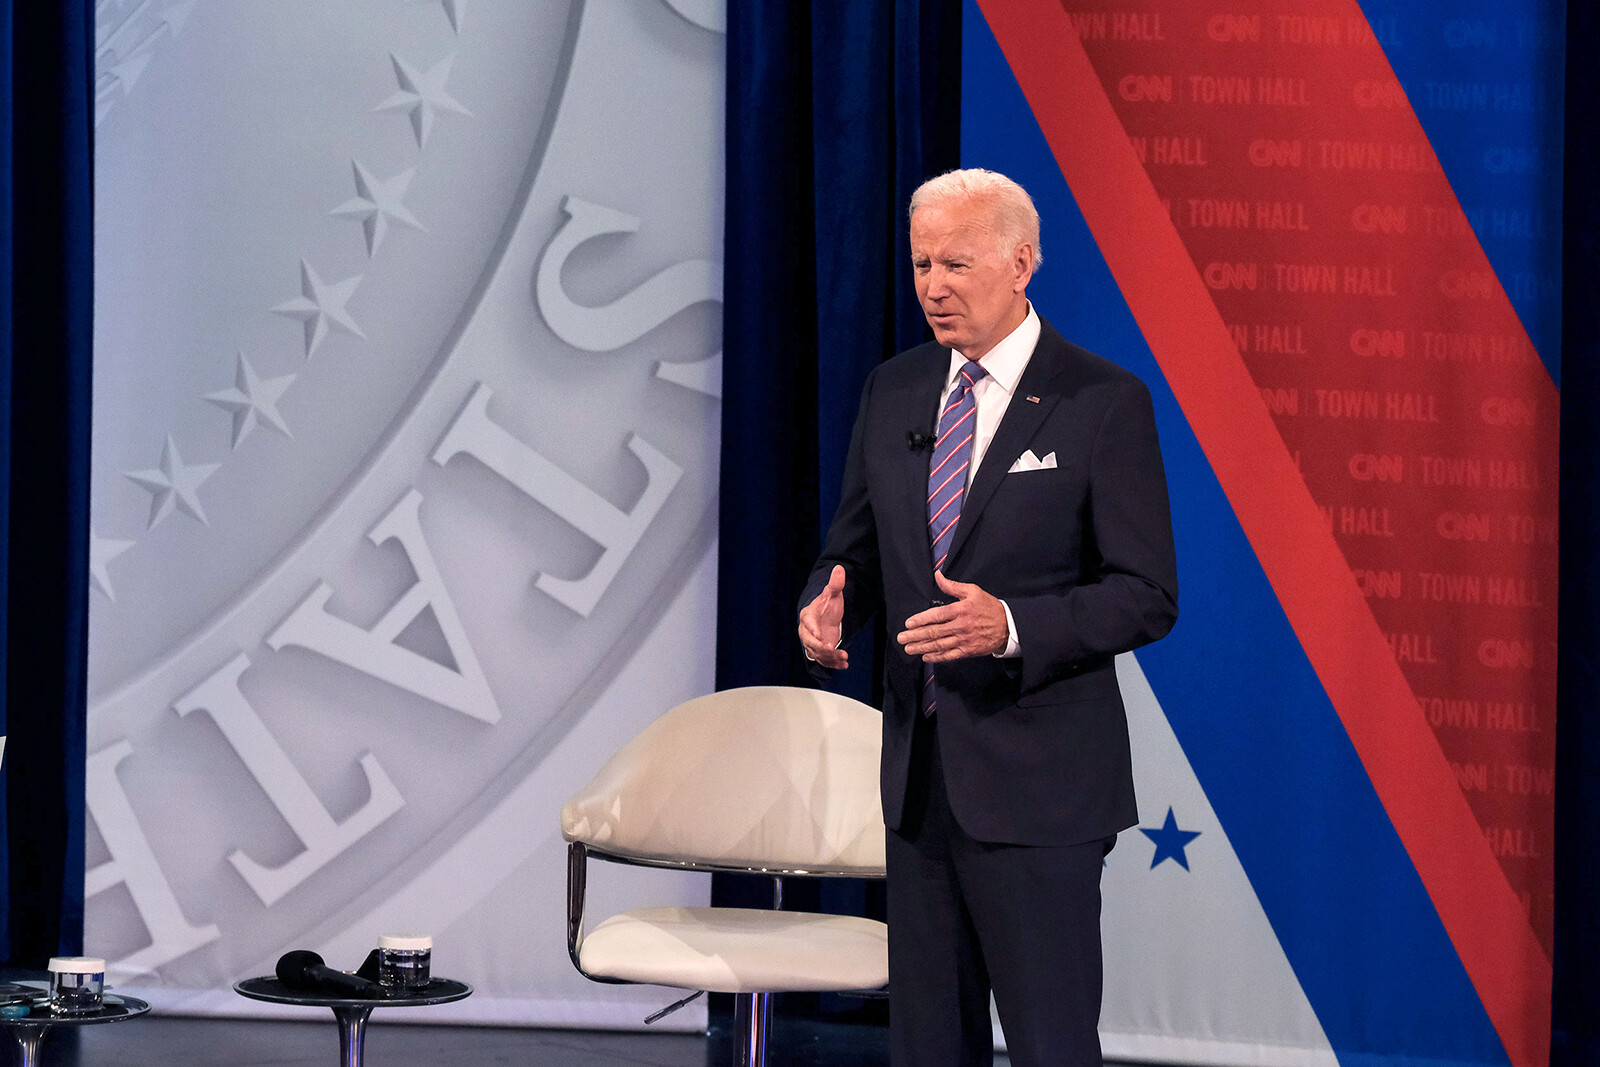 Biden says he's open to altering filibuster on voting rights